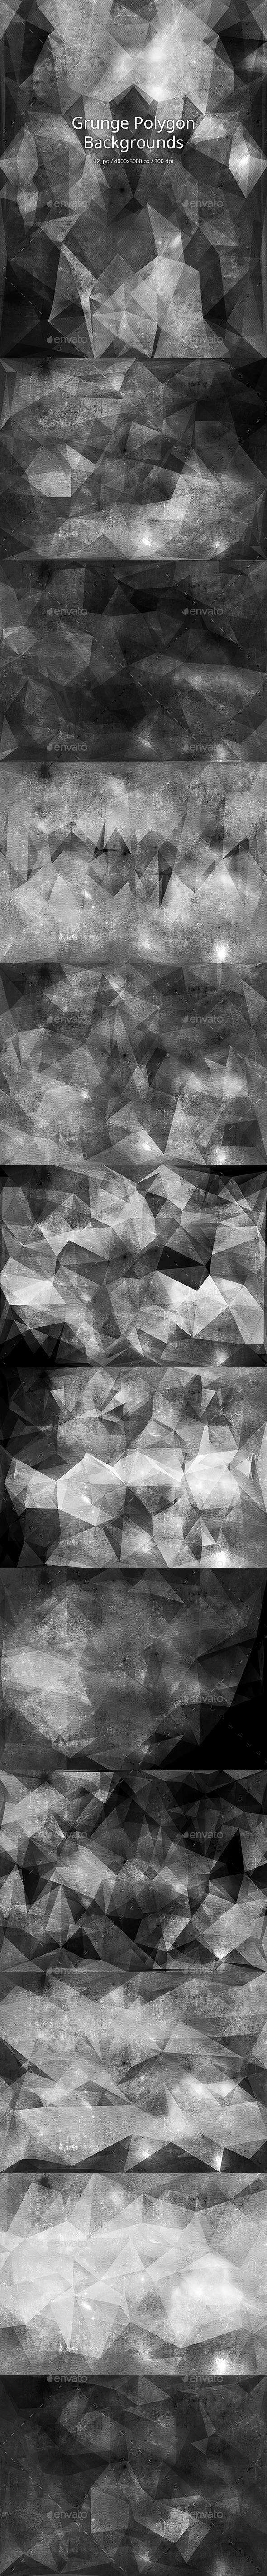 GraphicRiver Grunge Polygon Backgrounds 10954352